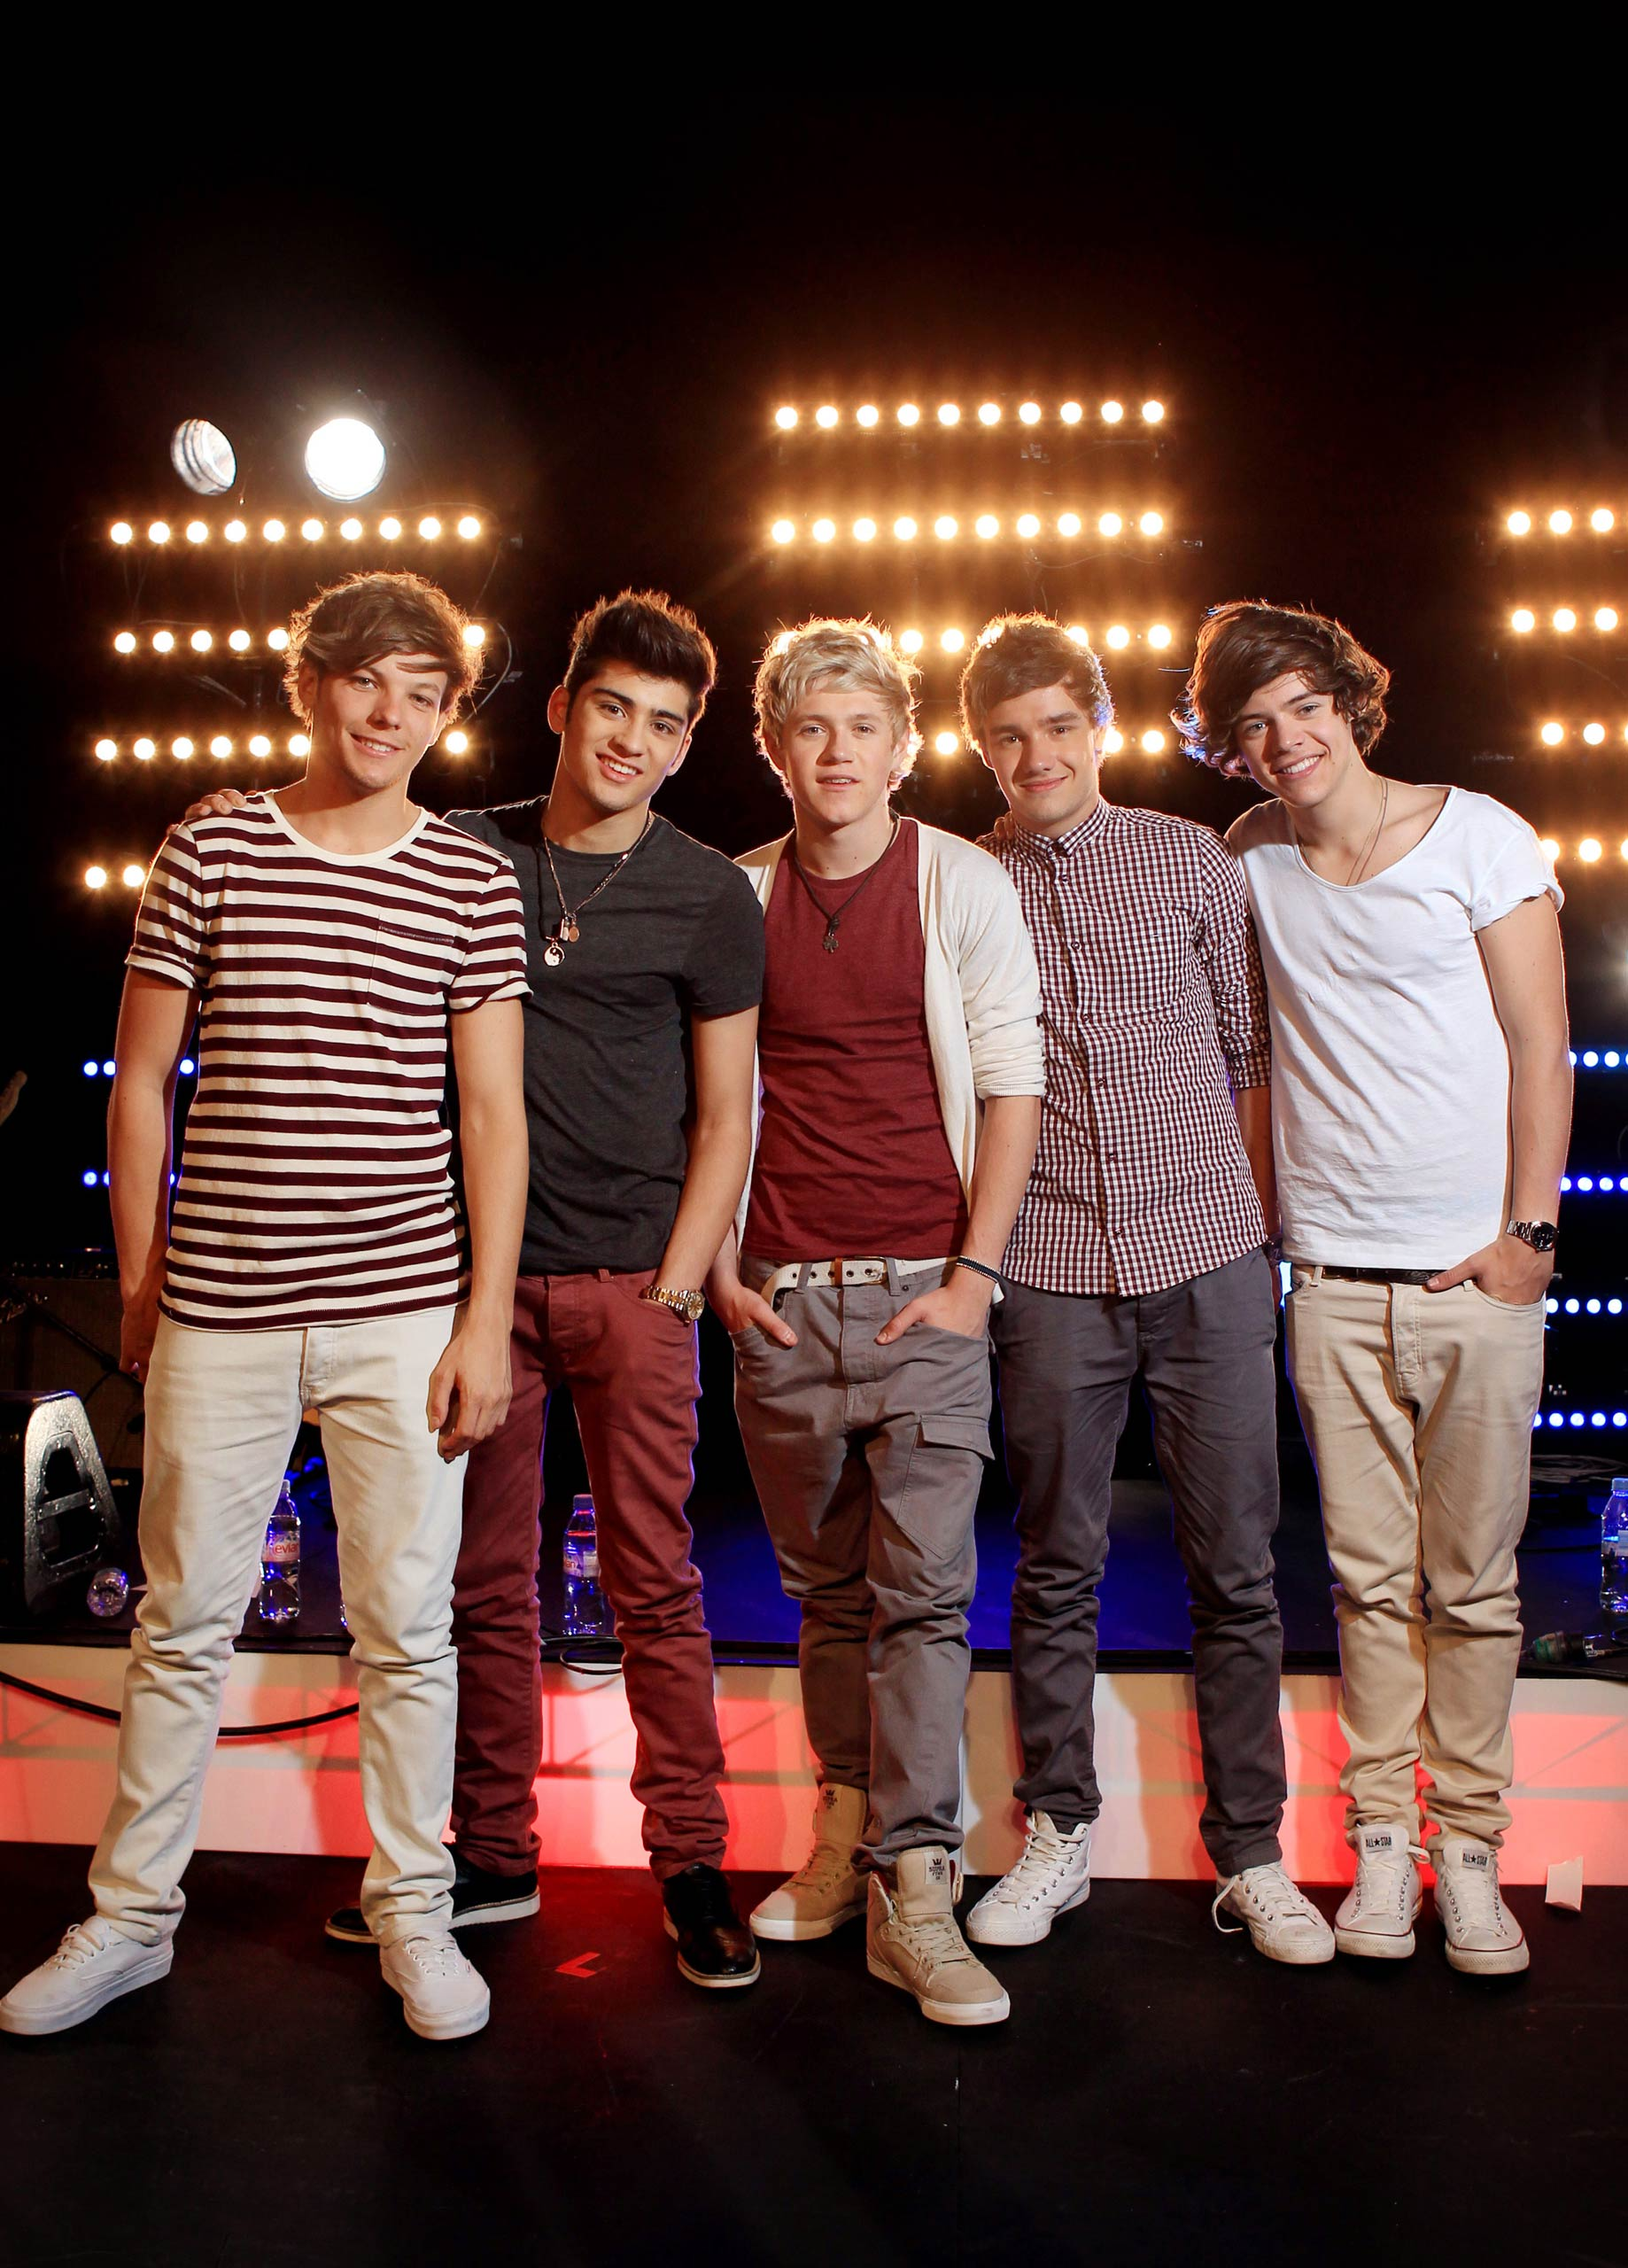 Louis Tomlinson, Zayn Malik, Niall Horan, Liam Payne and Harry Styles of One Direction pose during a portrait shoot at Fox Studios in Sydney, Australia in 2012.